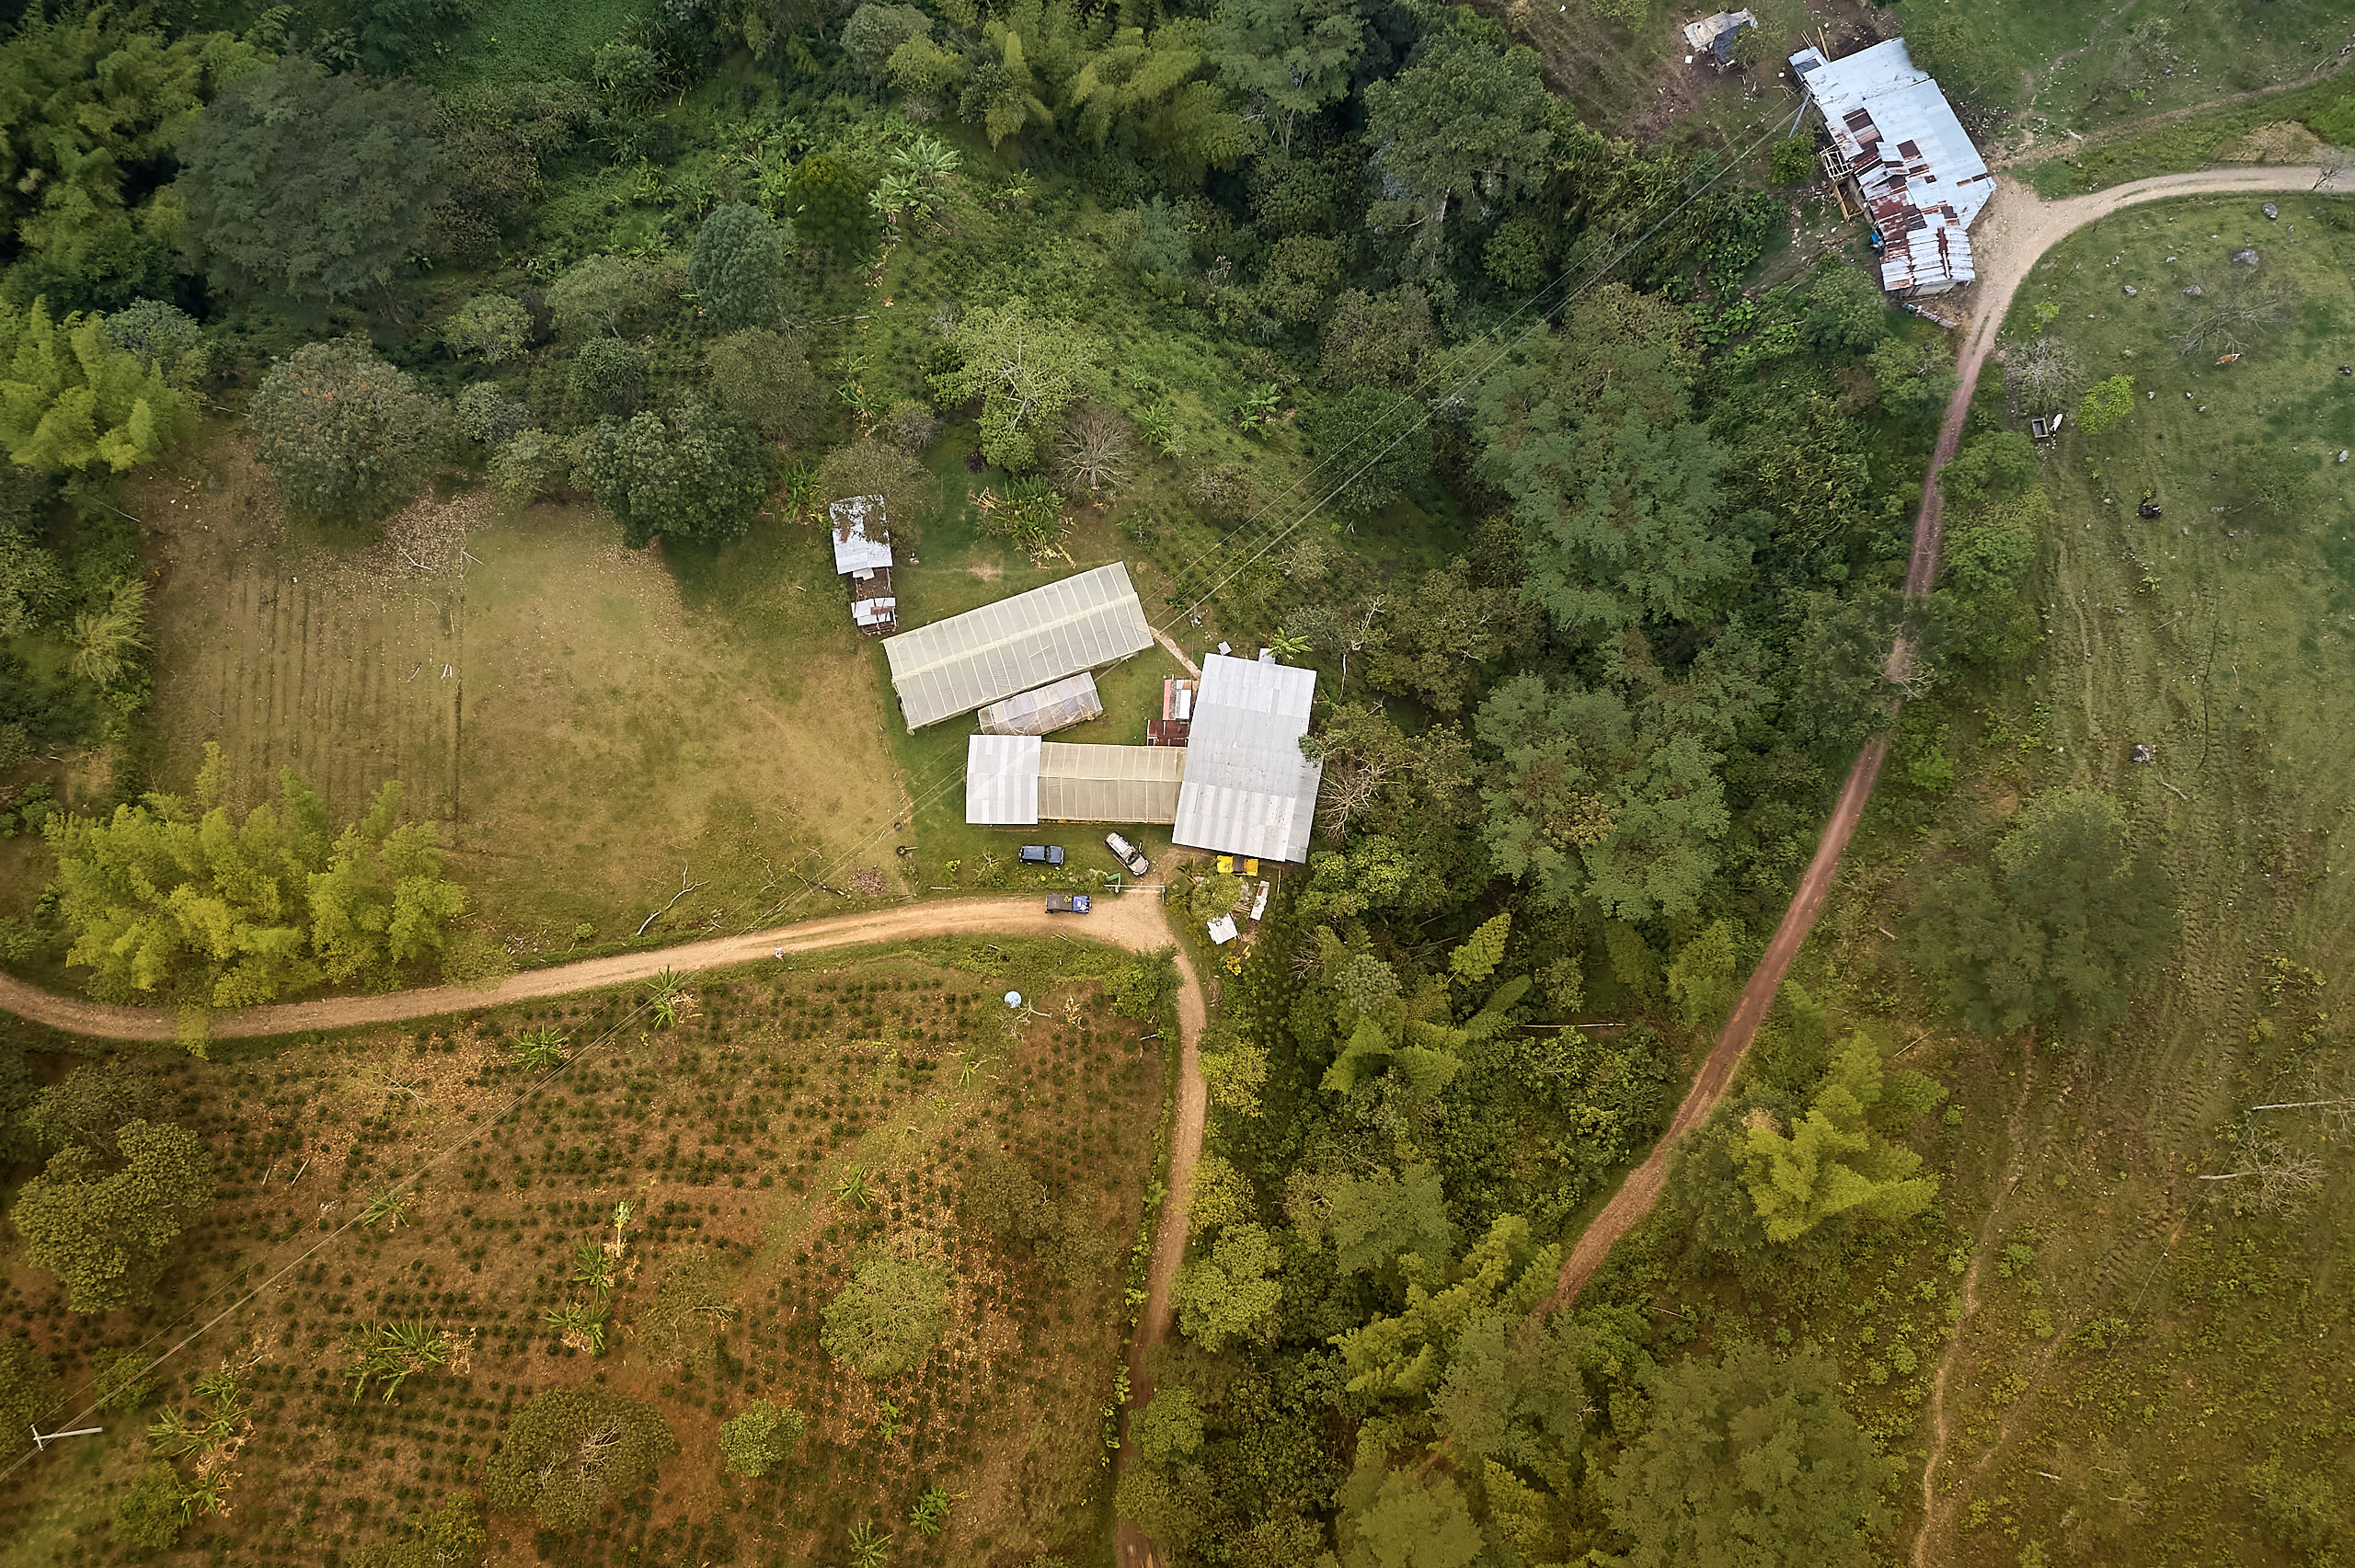 Their farm seen from above